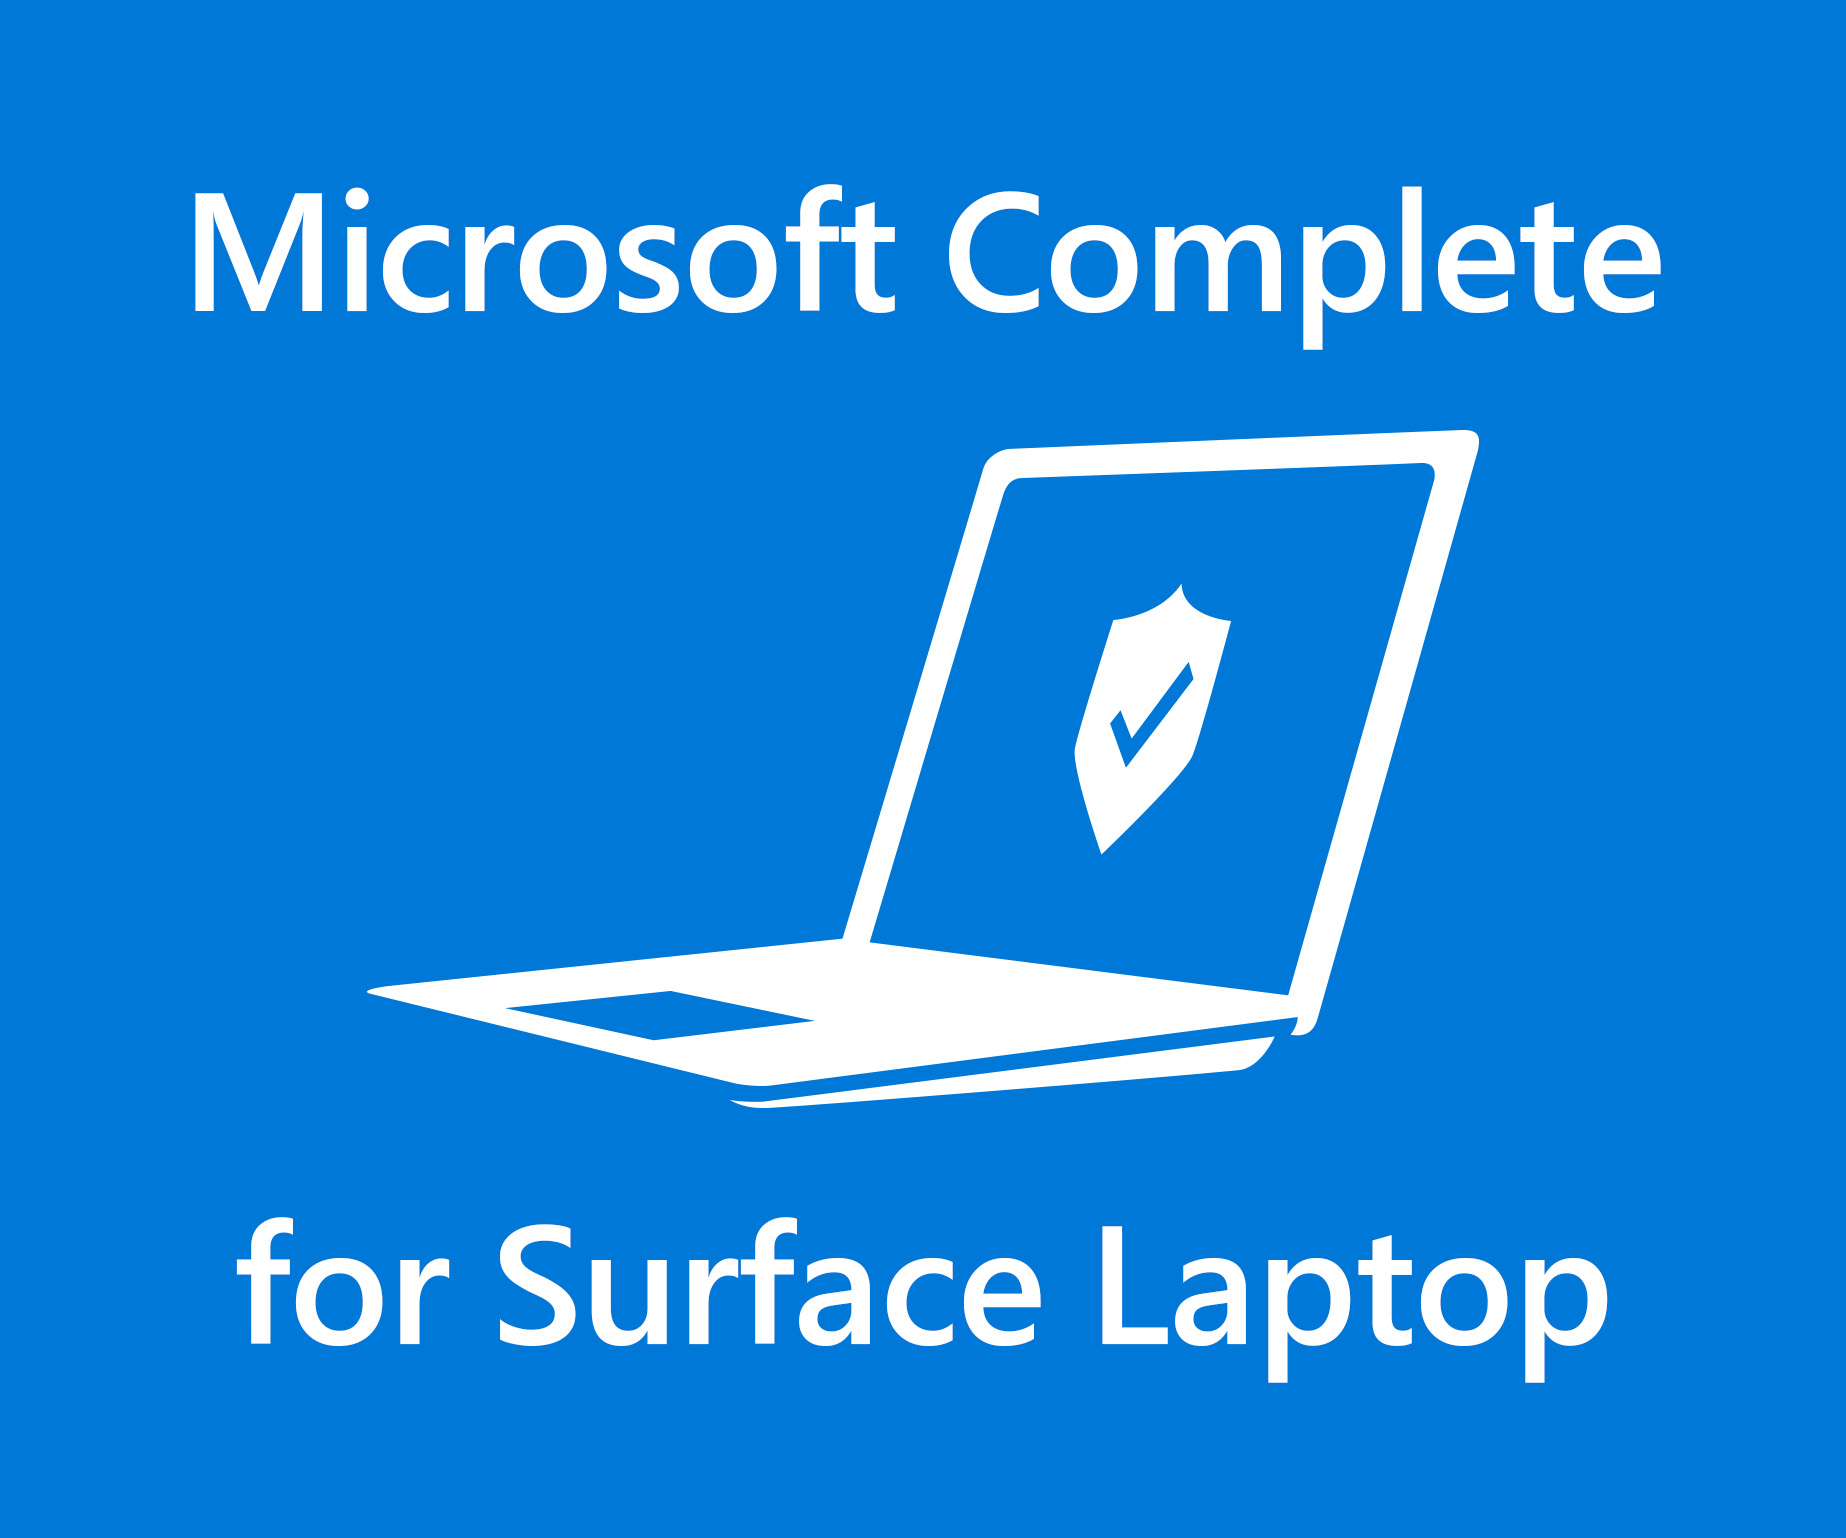 microsoft-complete-for-surface-laptop